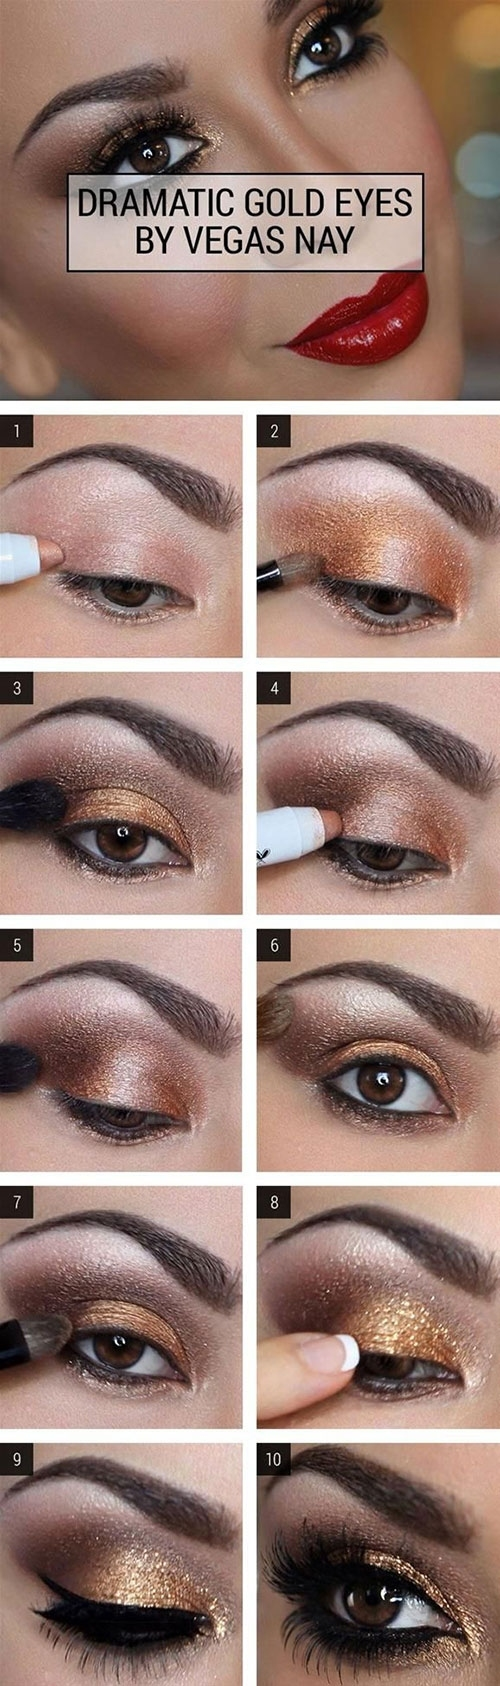 How To Do Smokey Eye Makeup? - Top 10 Tutorial Pictures For 2019 regarding Smokey Eye Makeup Tutorial Step-By-Step